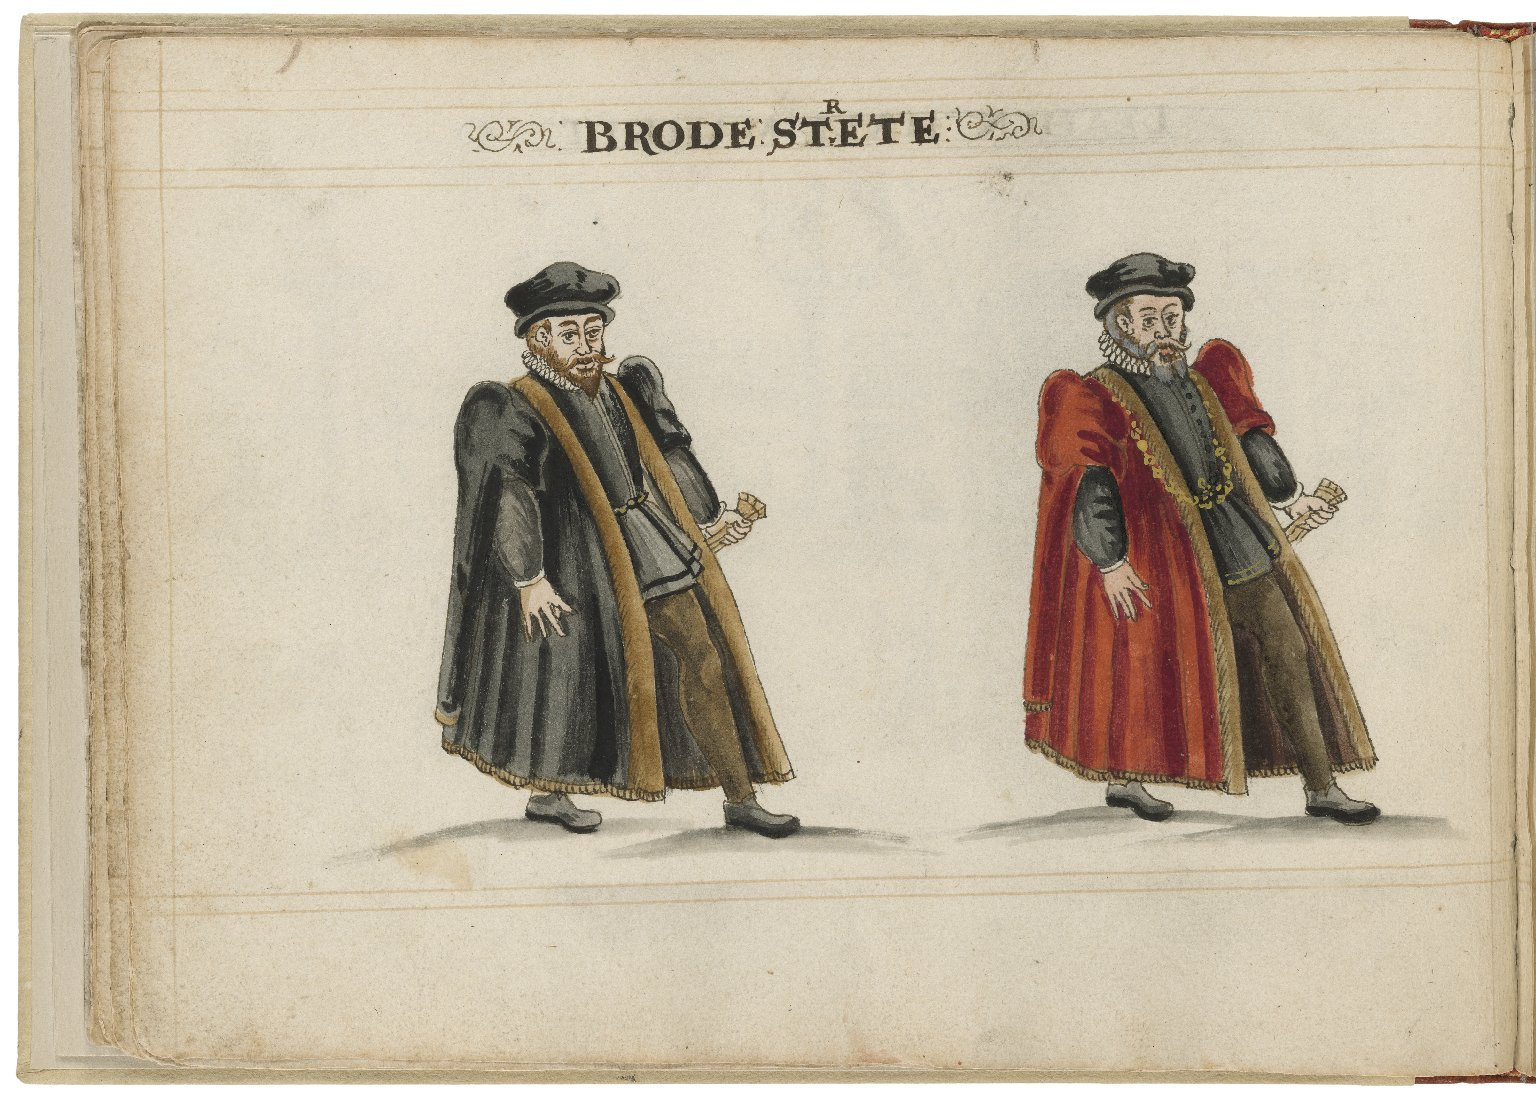 Watercolour painting of the alderman and deputy in charge of Broad Street Ward by Hugh Alley. Image courtesy of the Folger Digital Image Collection.